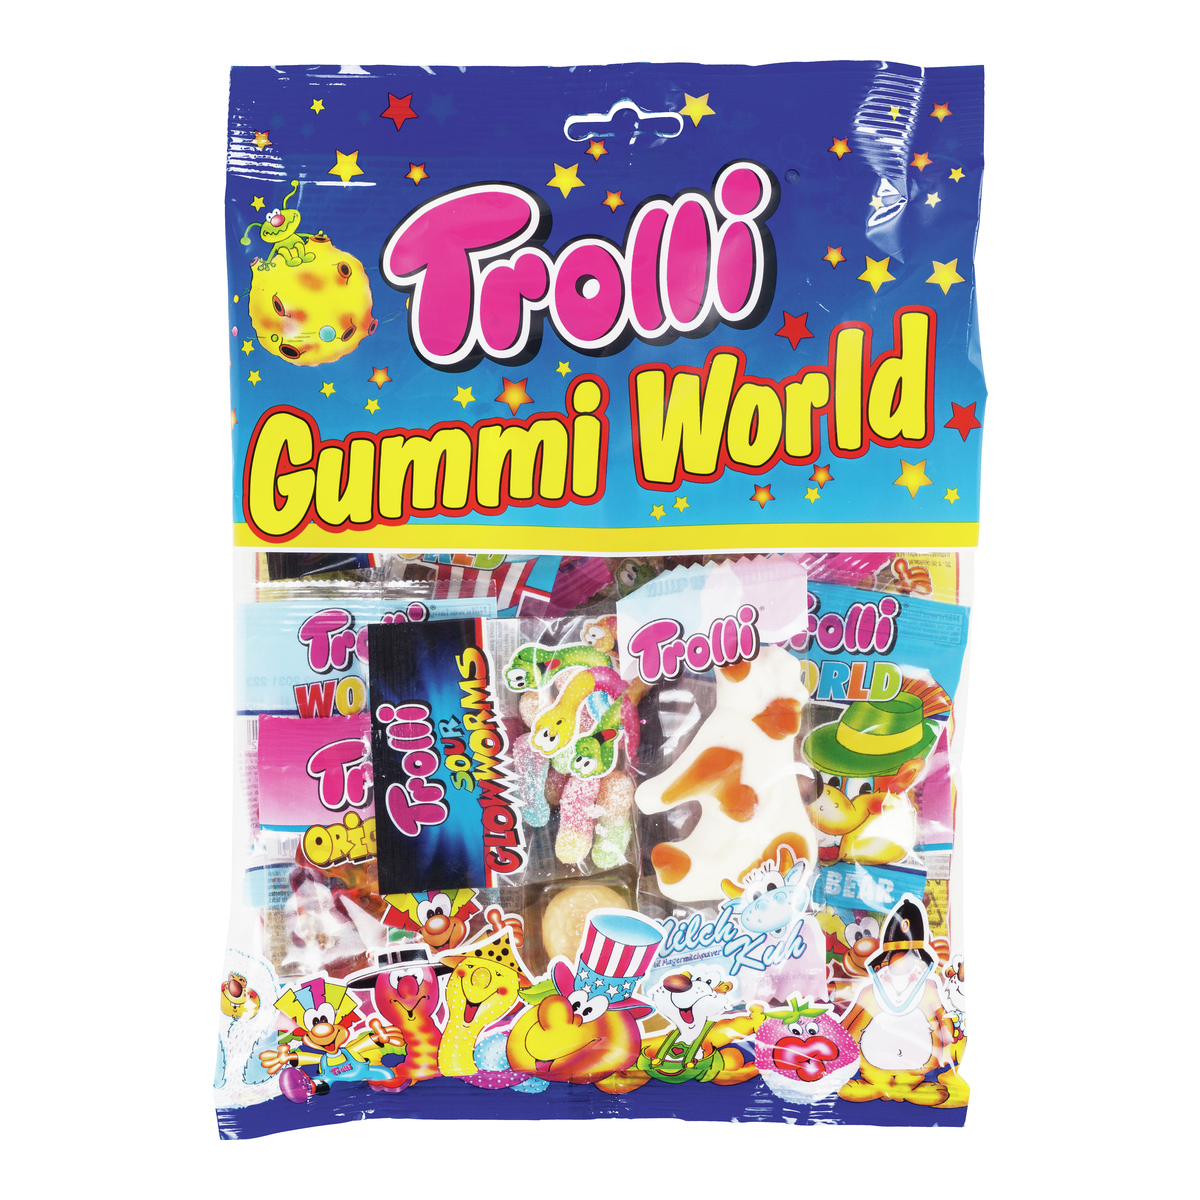 Gummi world